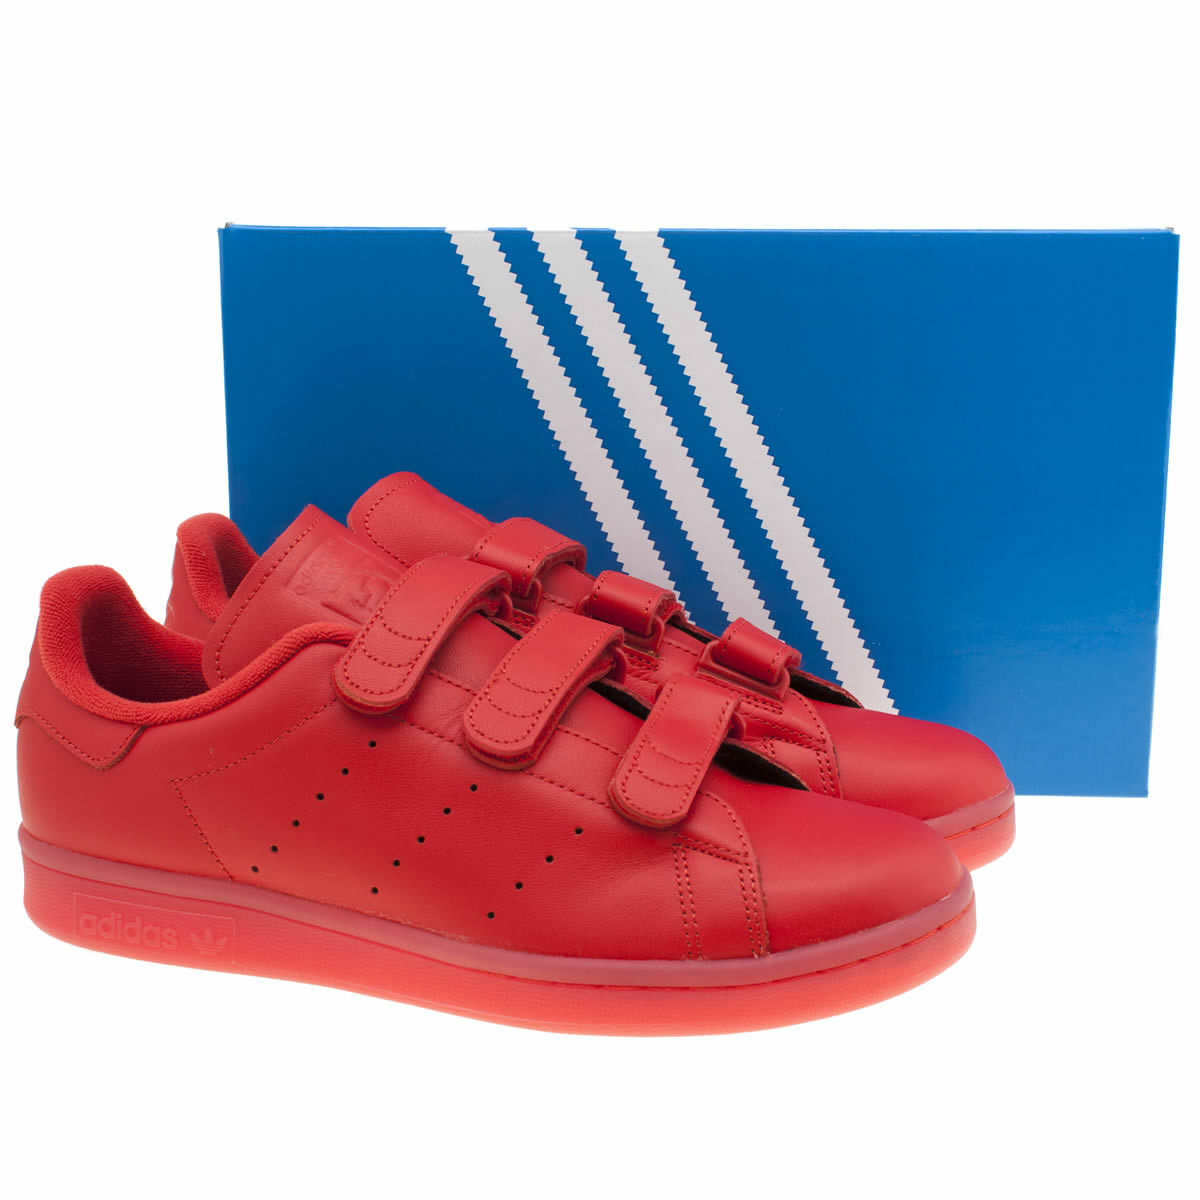 Adidas Rouge Stan Smith Confort En Cuir Baskets Taille 12